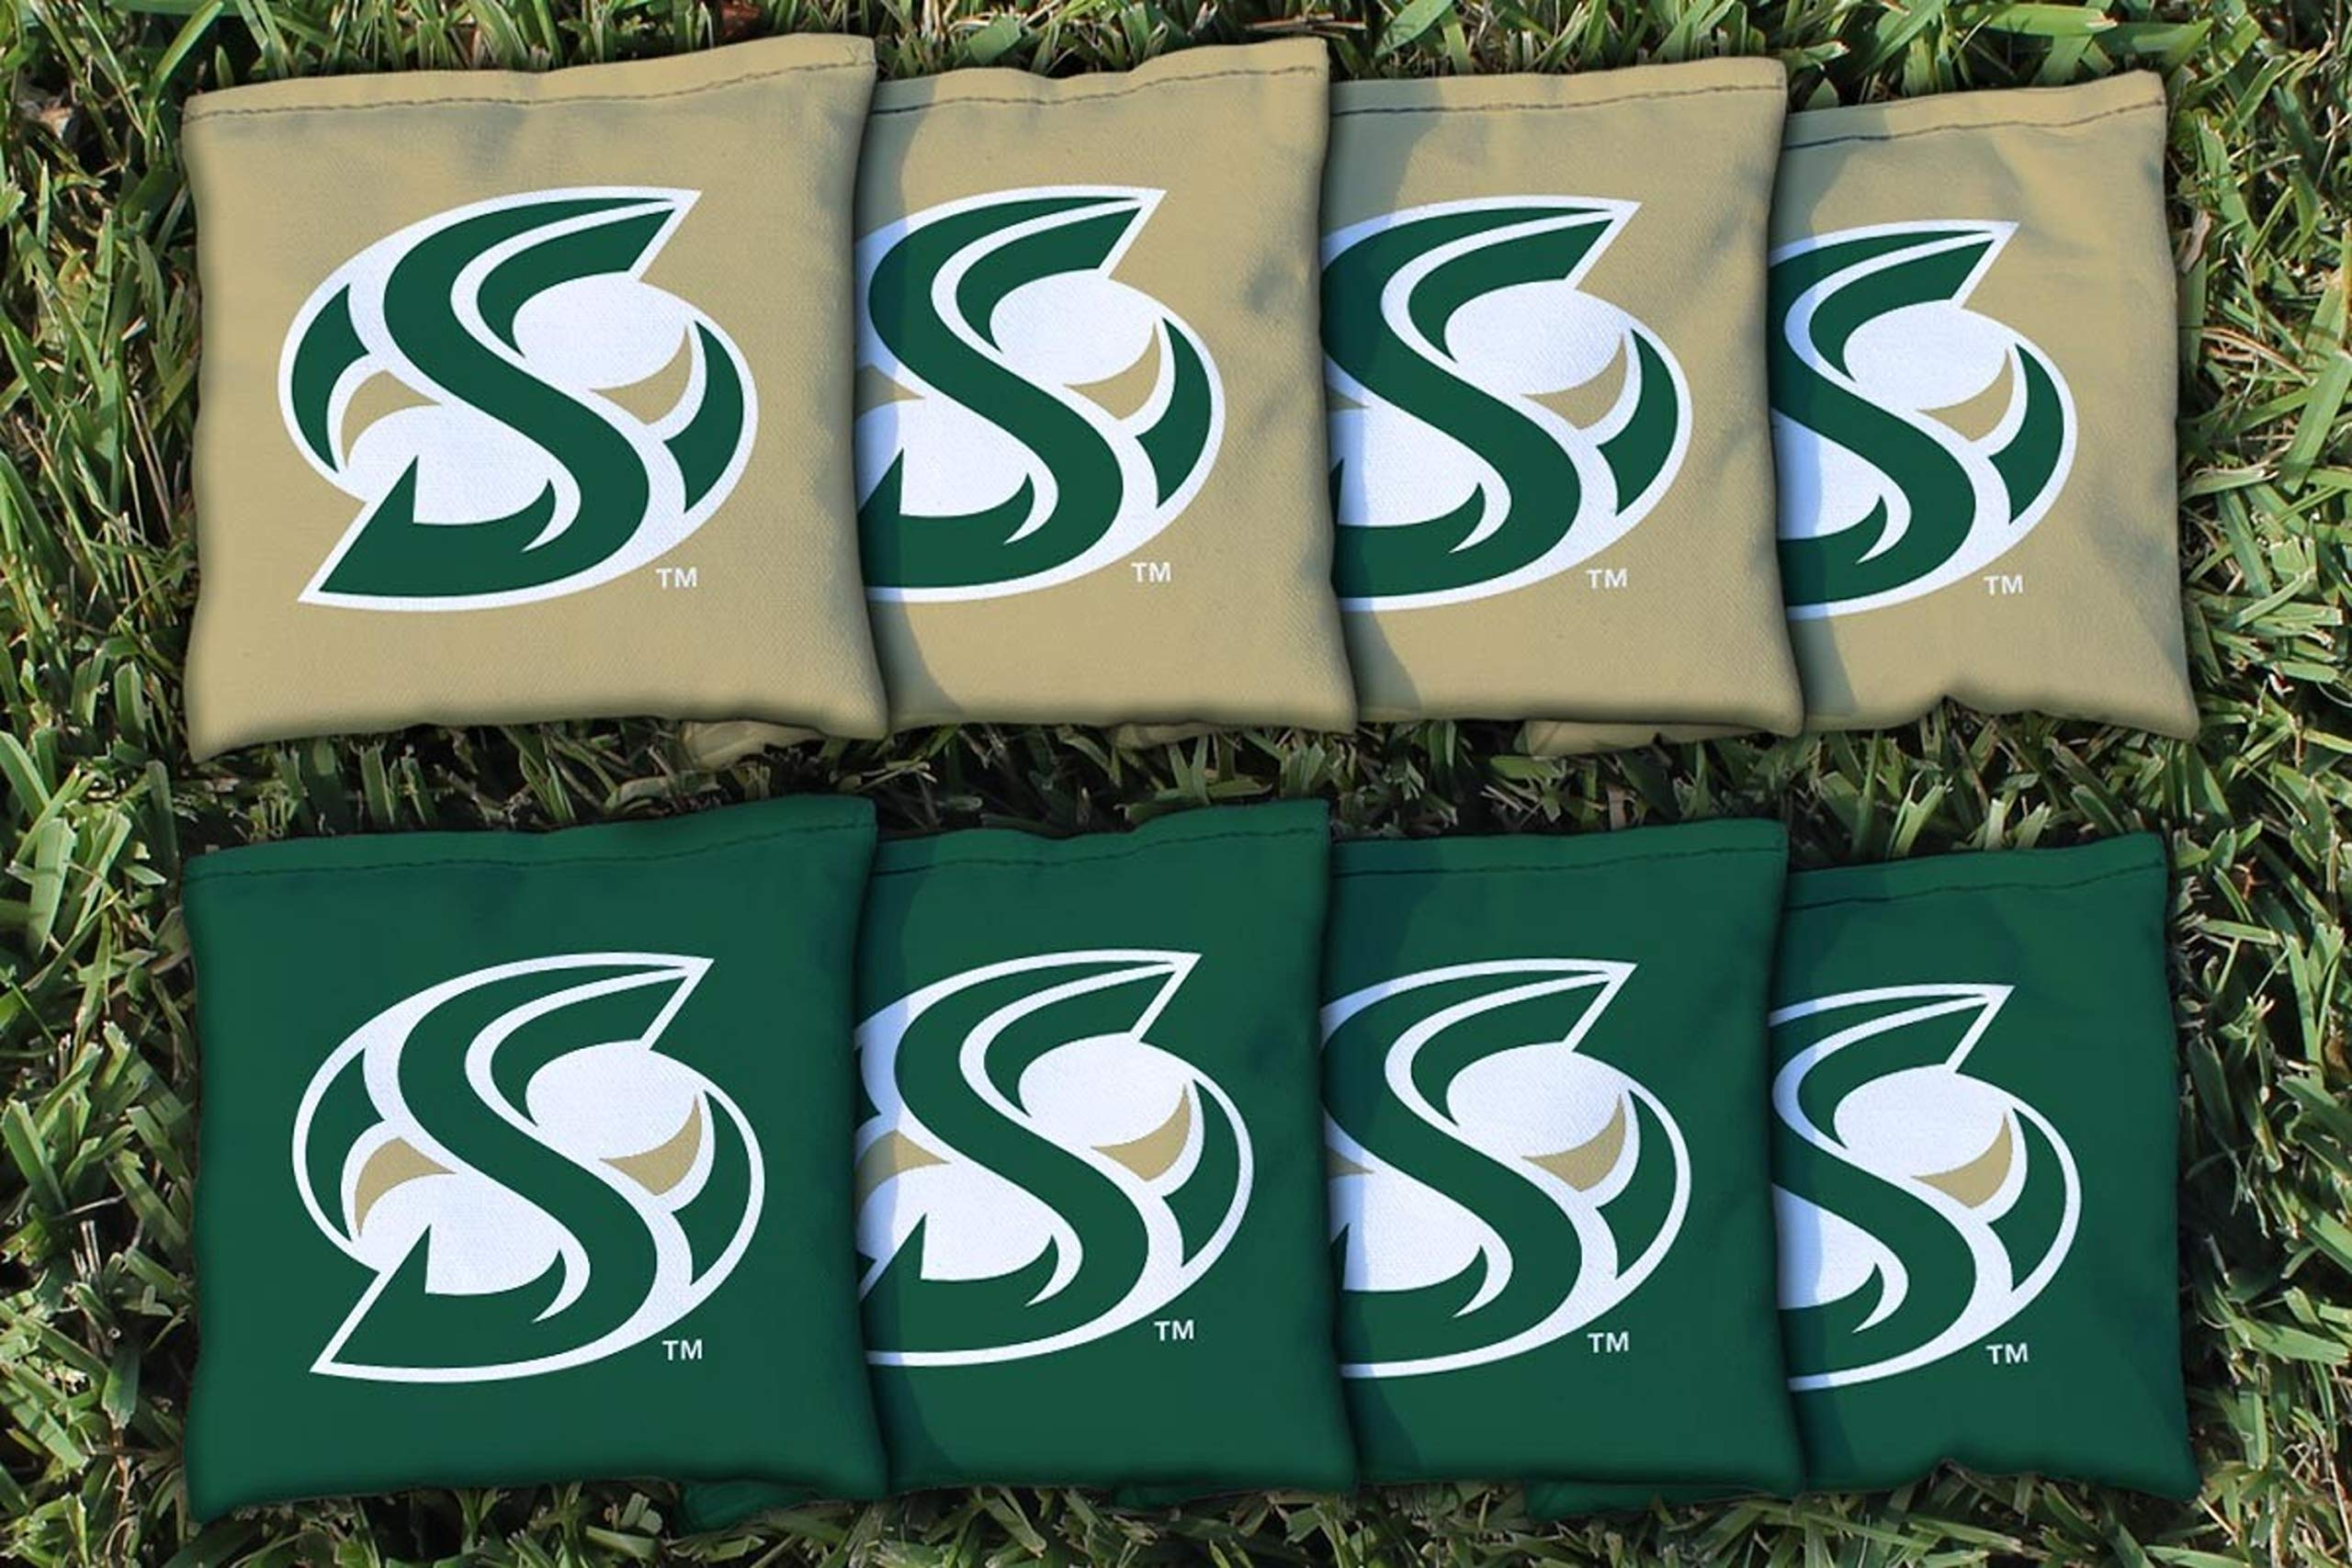 Victory Tailgate NCAA Collegiate Regulation Cornhole Game Bag Set (8 Bags Included, Corn-Filled) - Sacramento State Hornets by Victory Tailgate